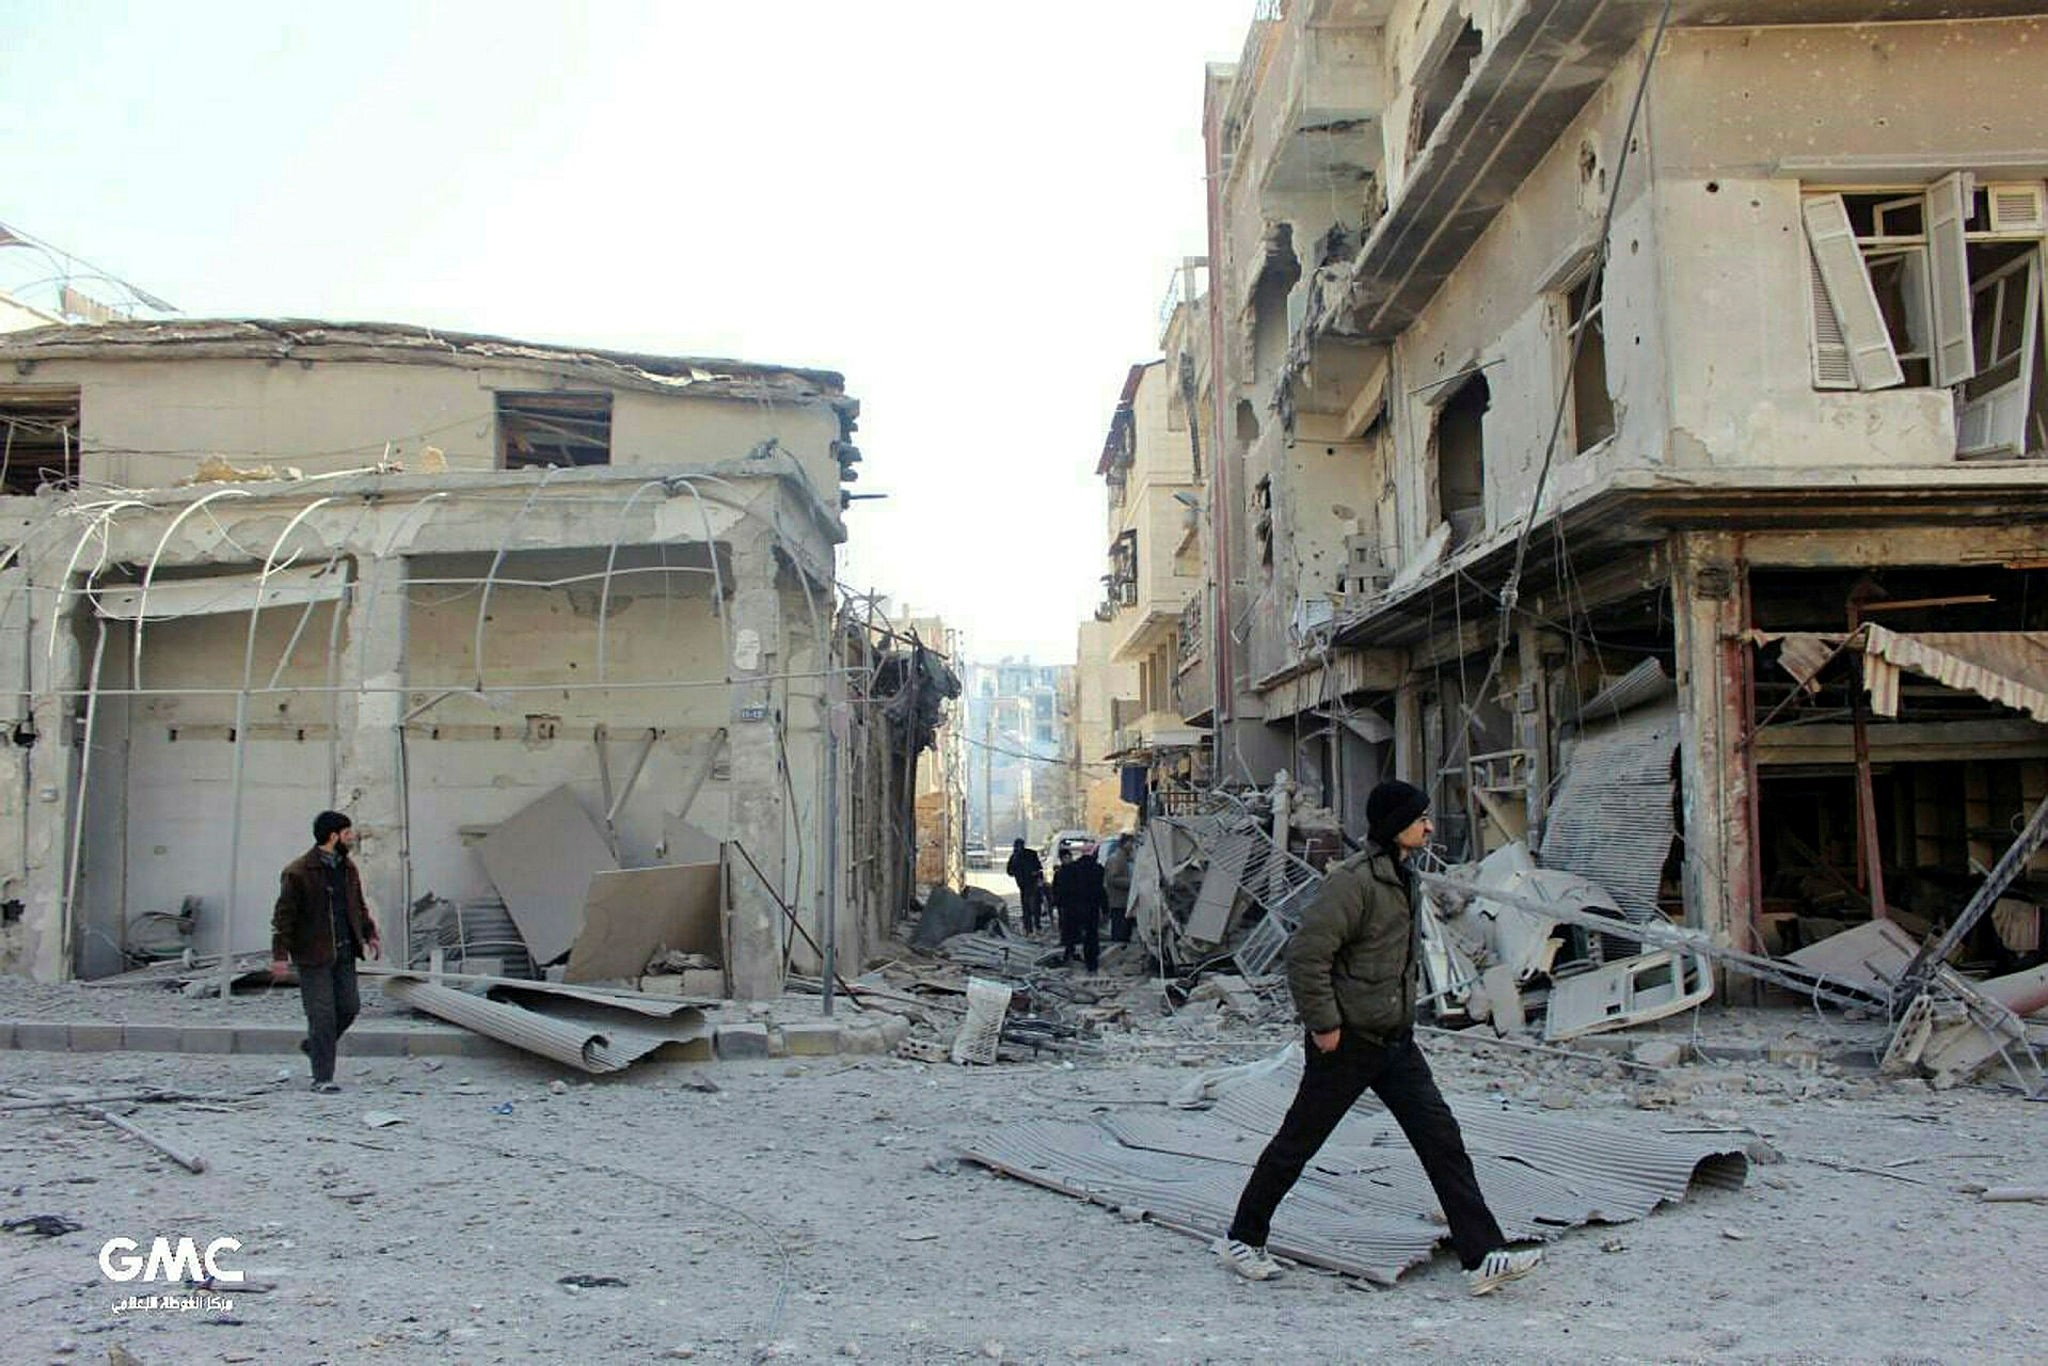 Syrians walking between destroyed buildings in Douma, after airstrikes and shelling by Syrian regime forces hit in the Eastern Ghouta region near Damascus, March. 1.